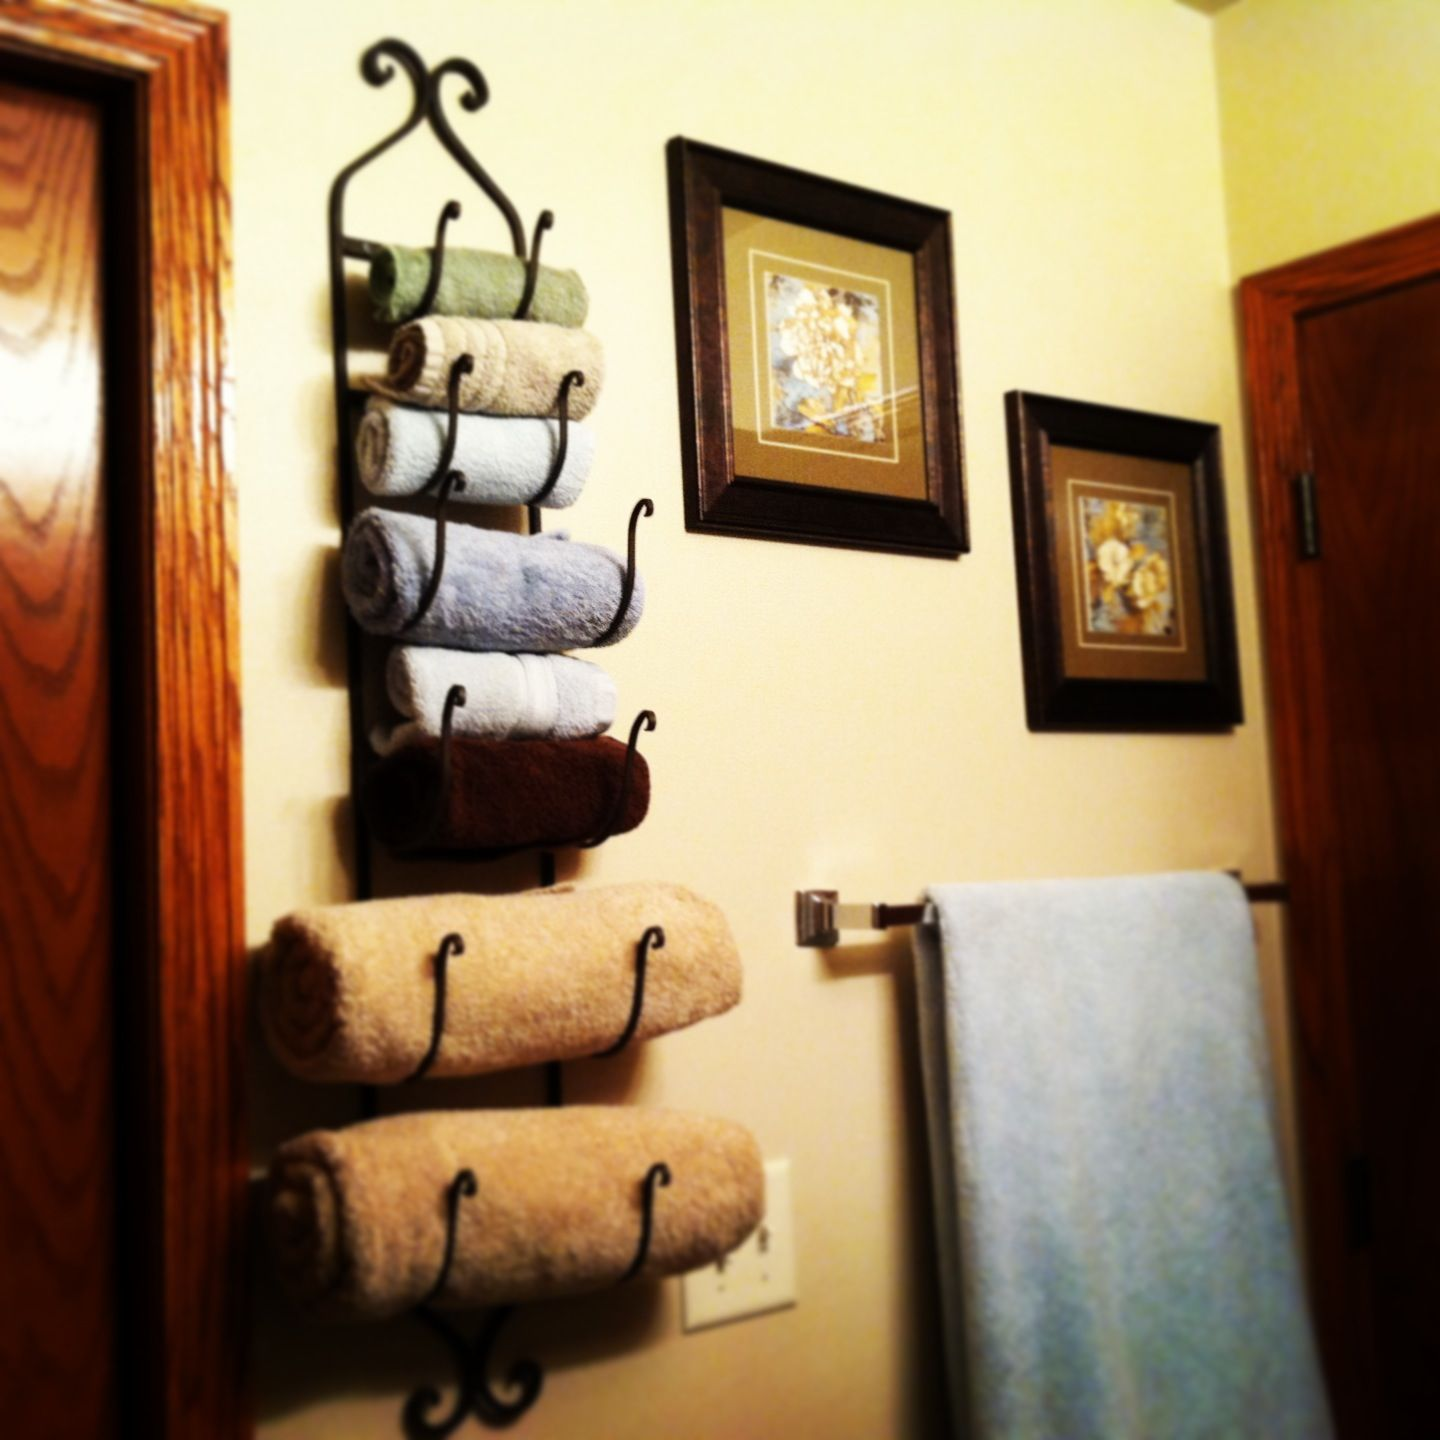 Wine Rack For Towels, More Space In Our Linen Closet